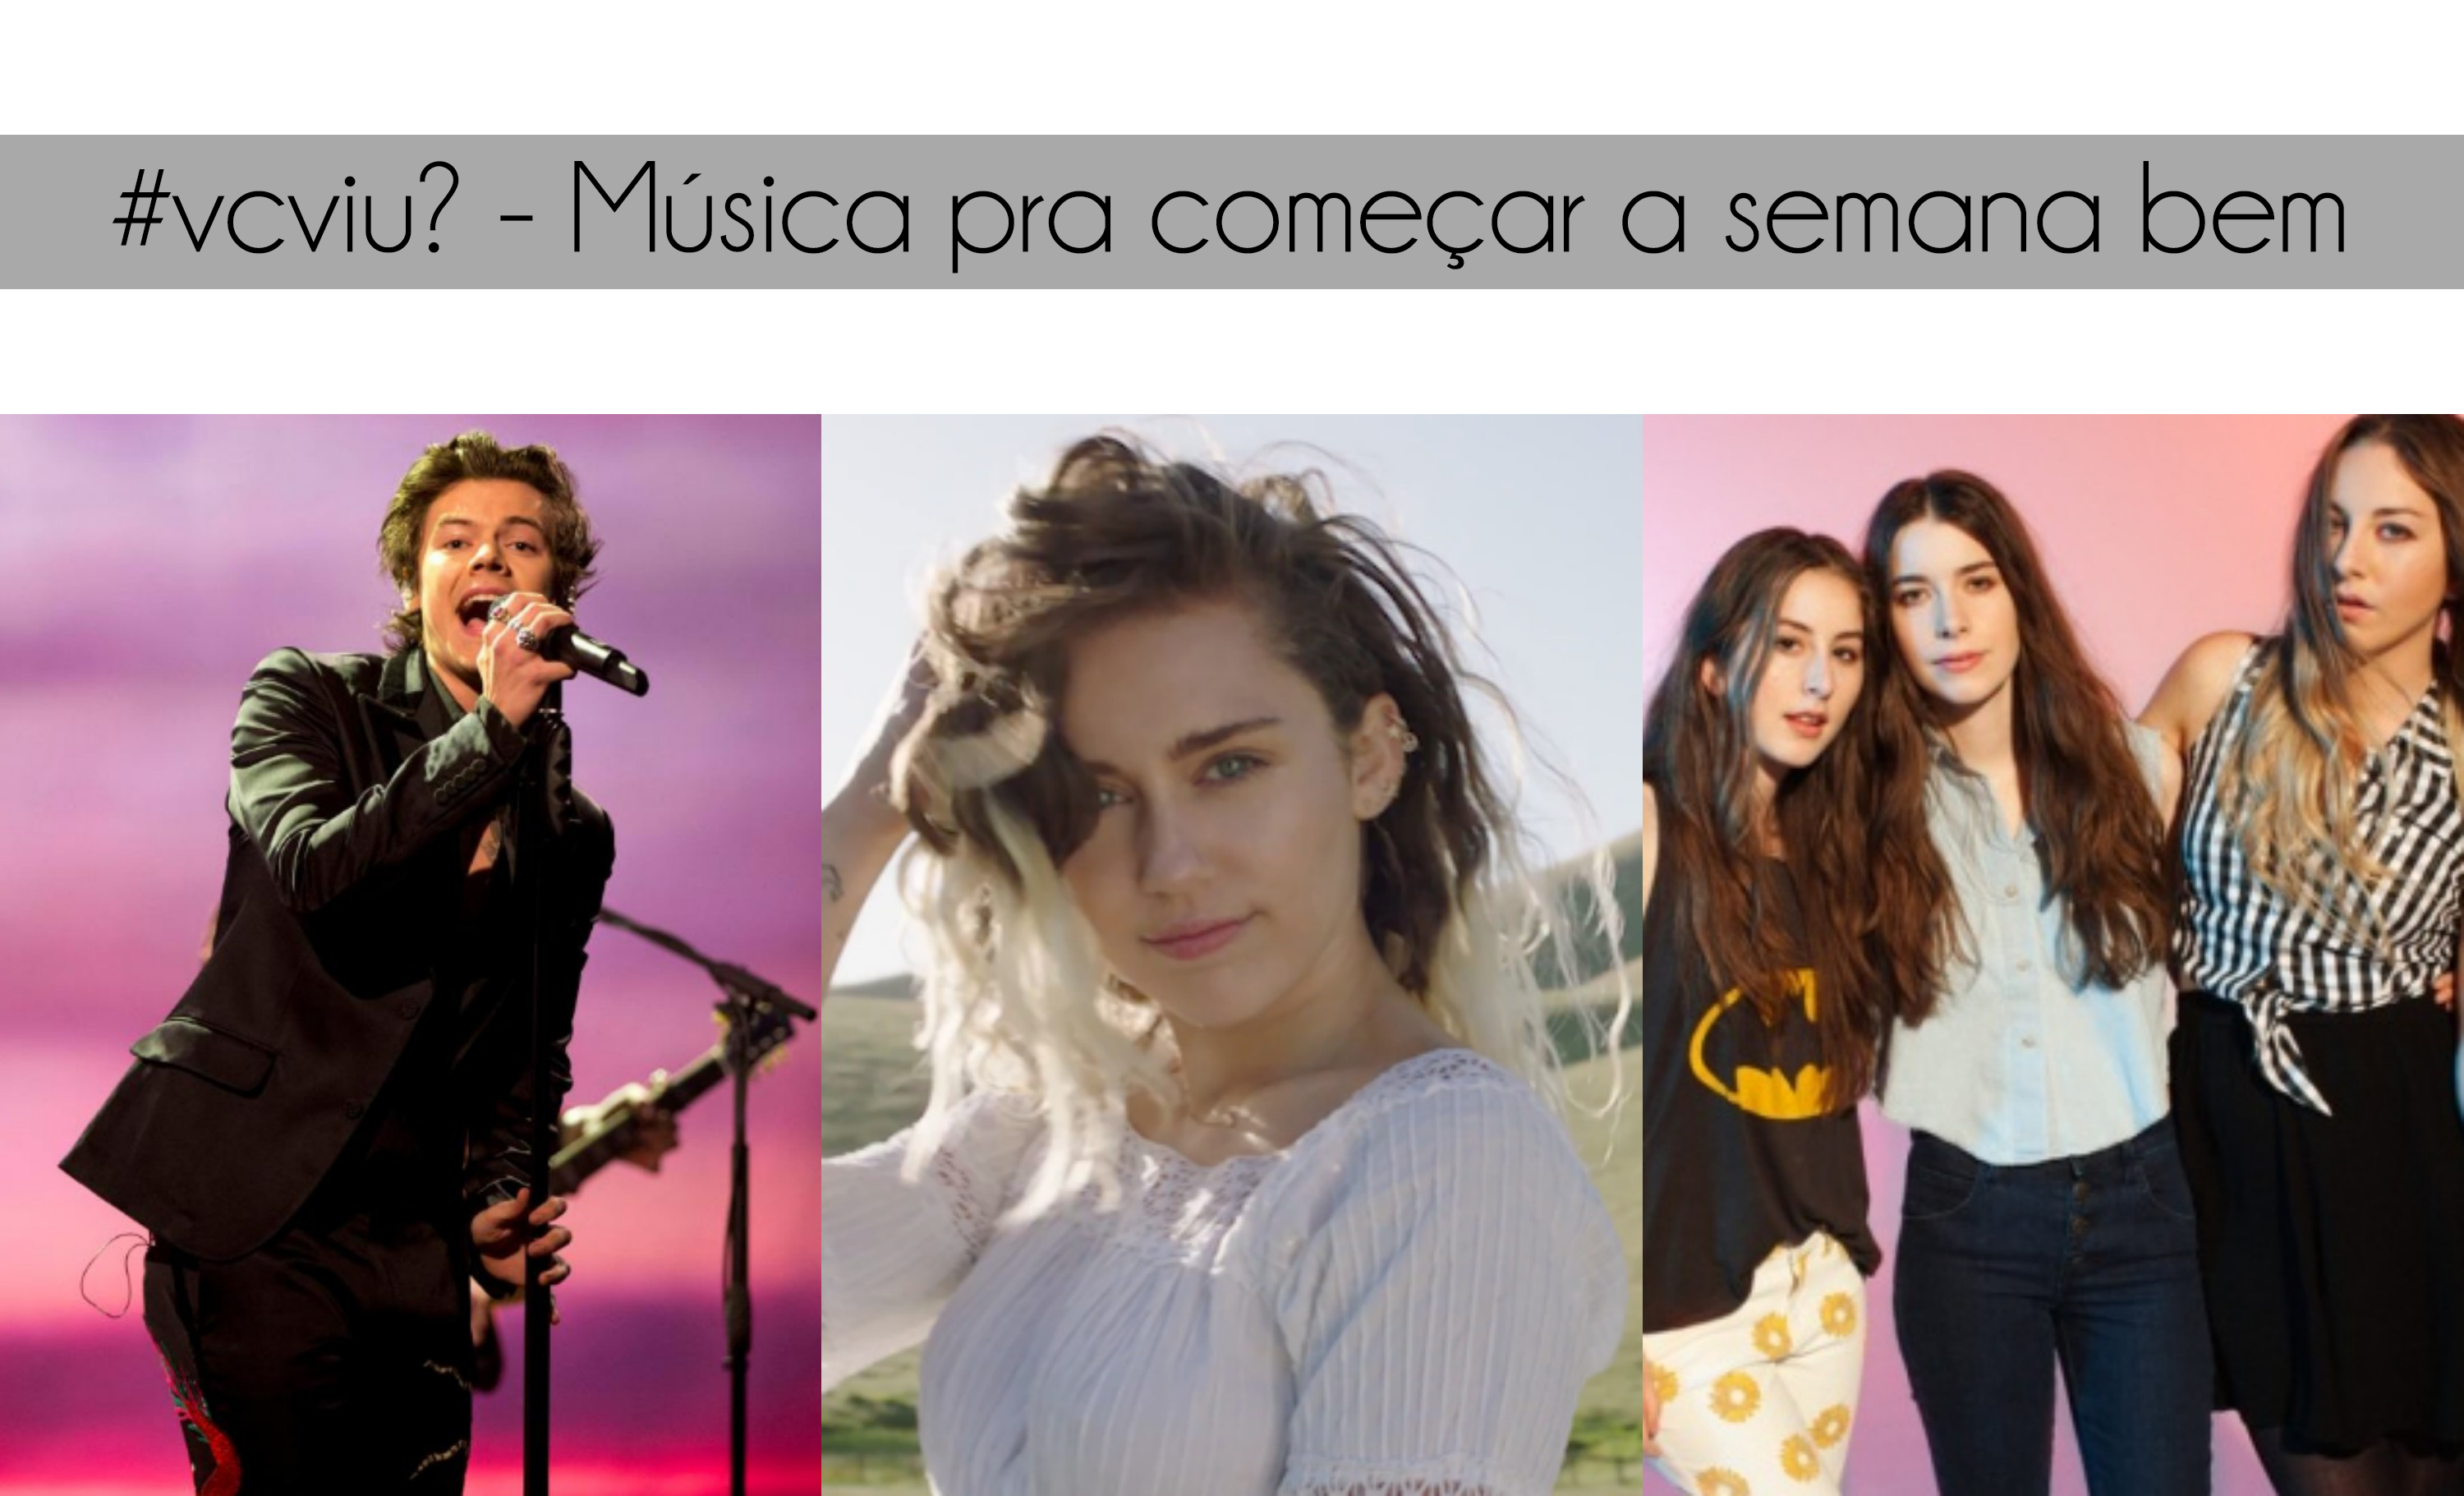 miley cyrus nova fase, harry styles solo, h